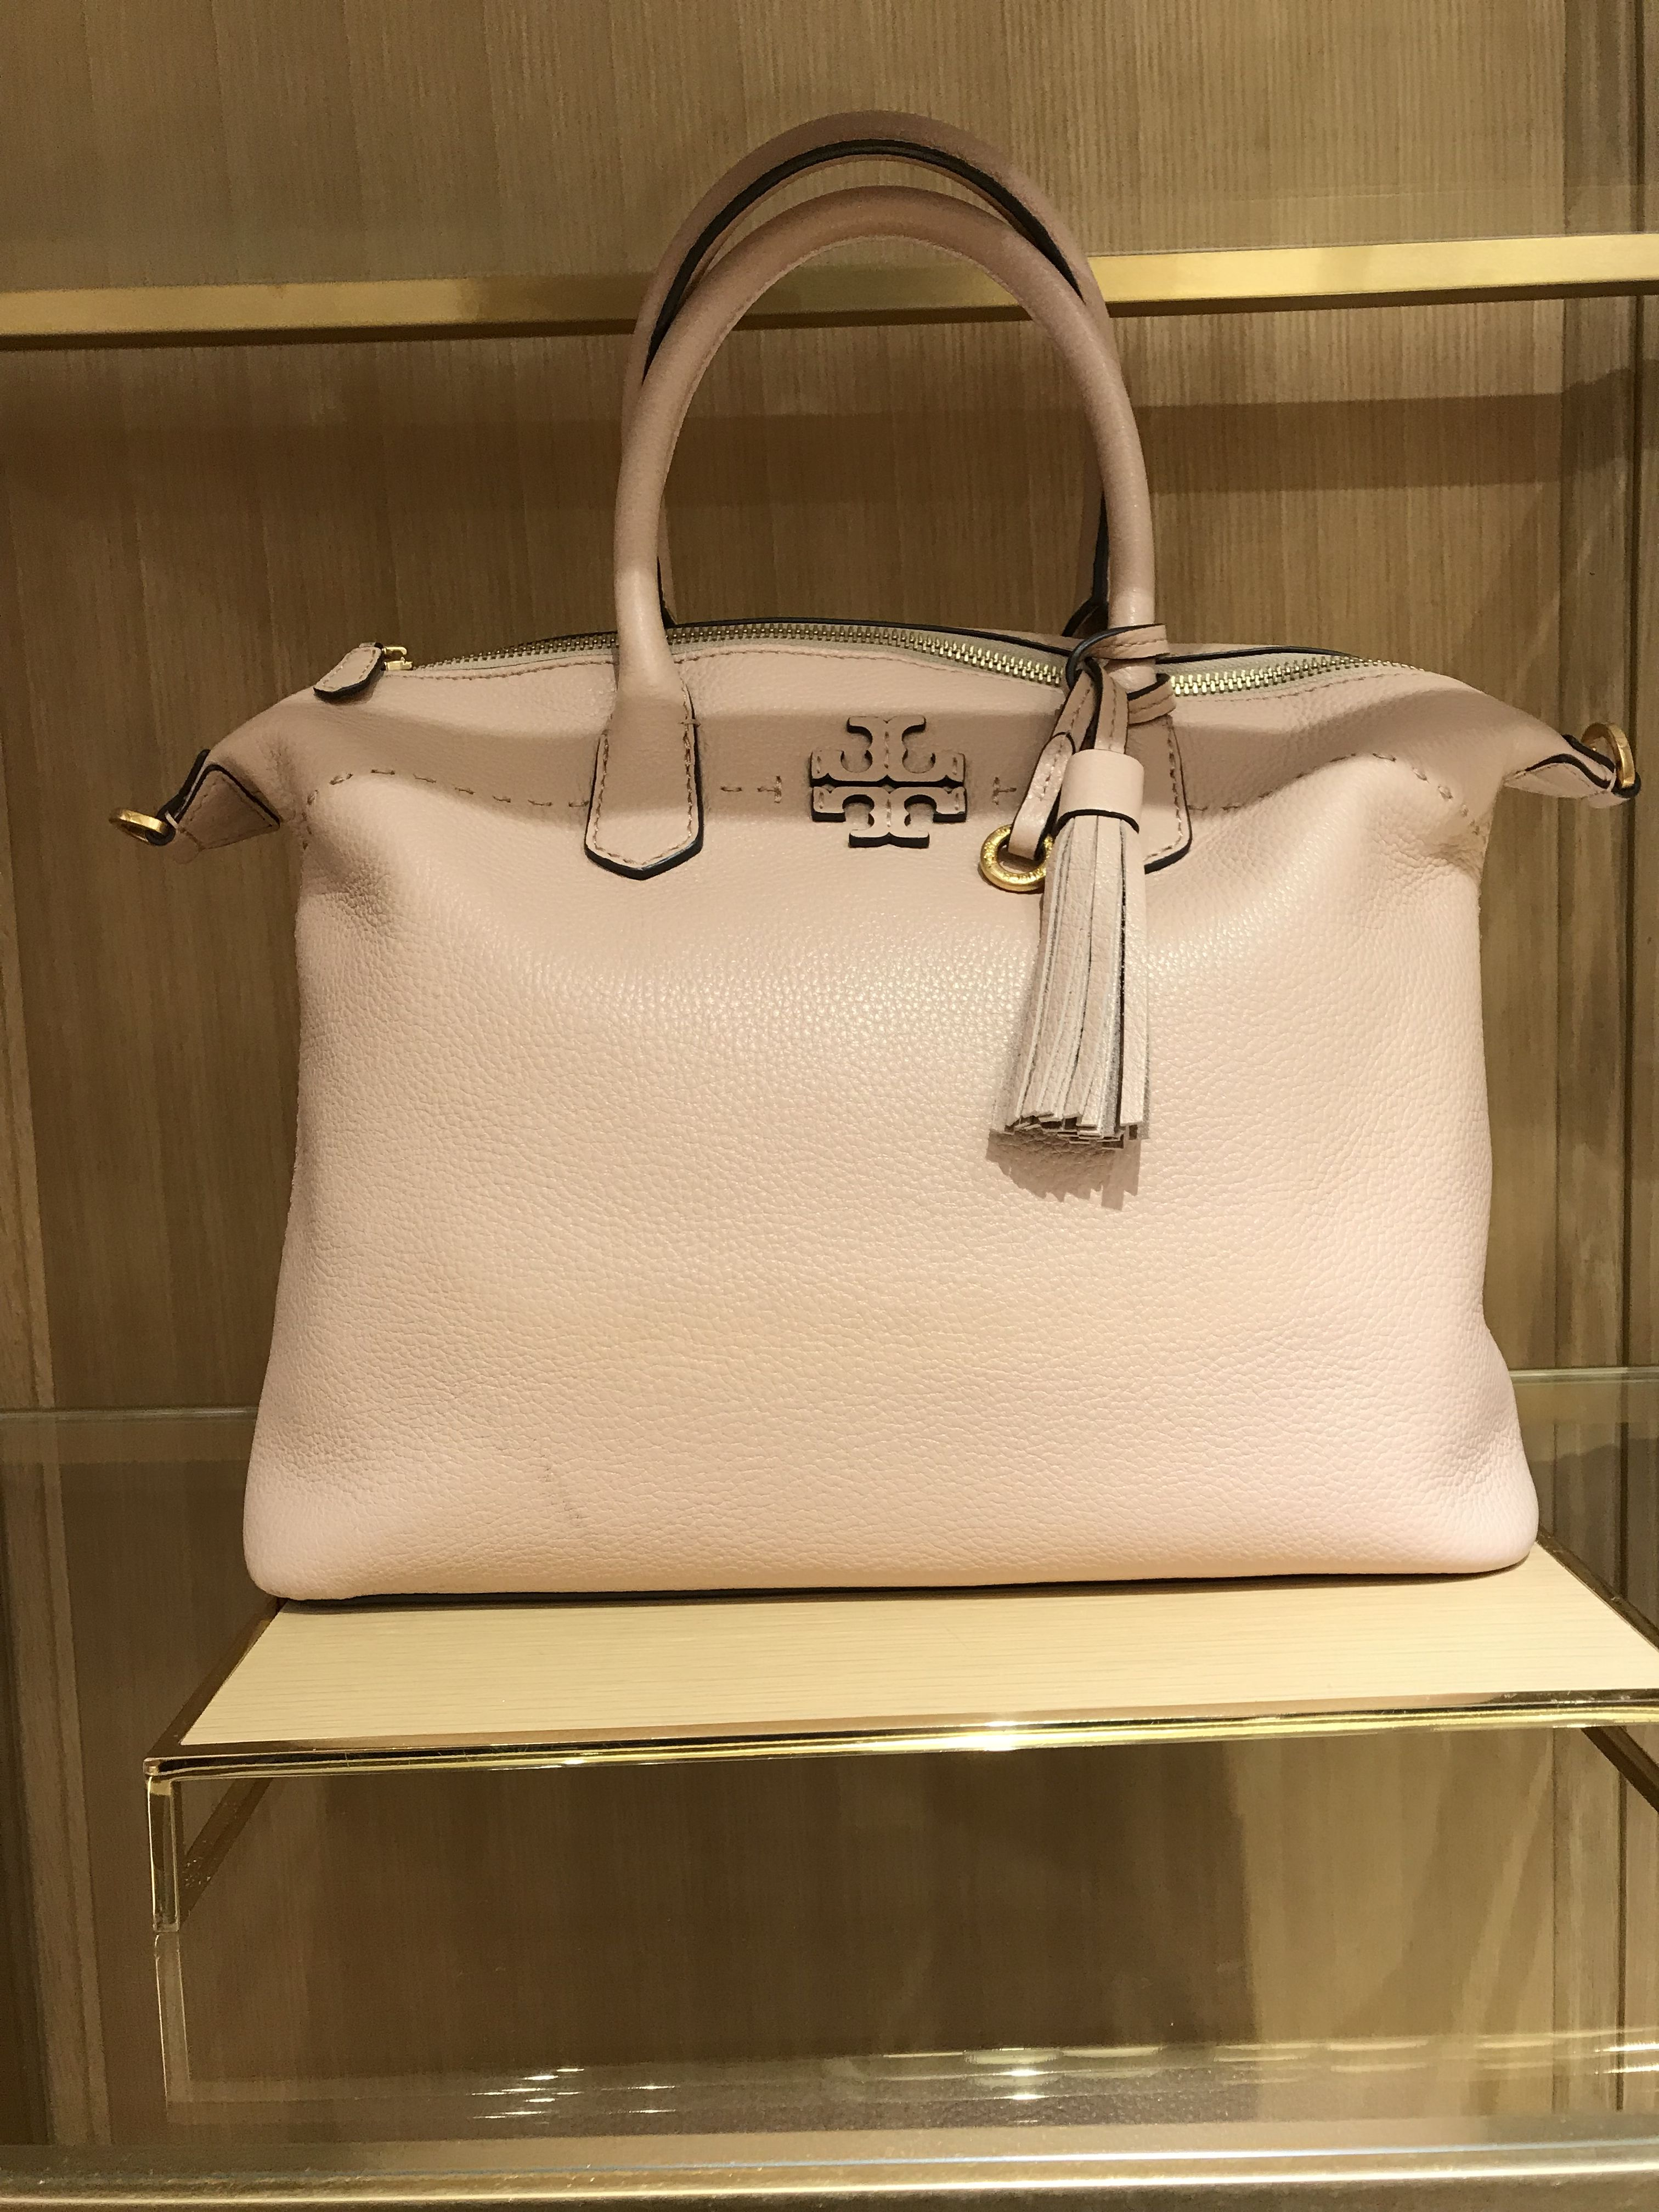 b4ccf6b2363 McGraw Slouchy Satchel Devon Sand. Find this Pin and more on Tory Burch  Handbags ...